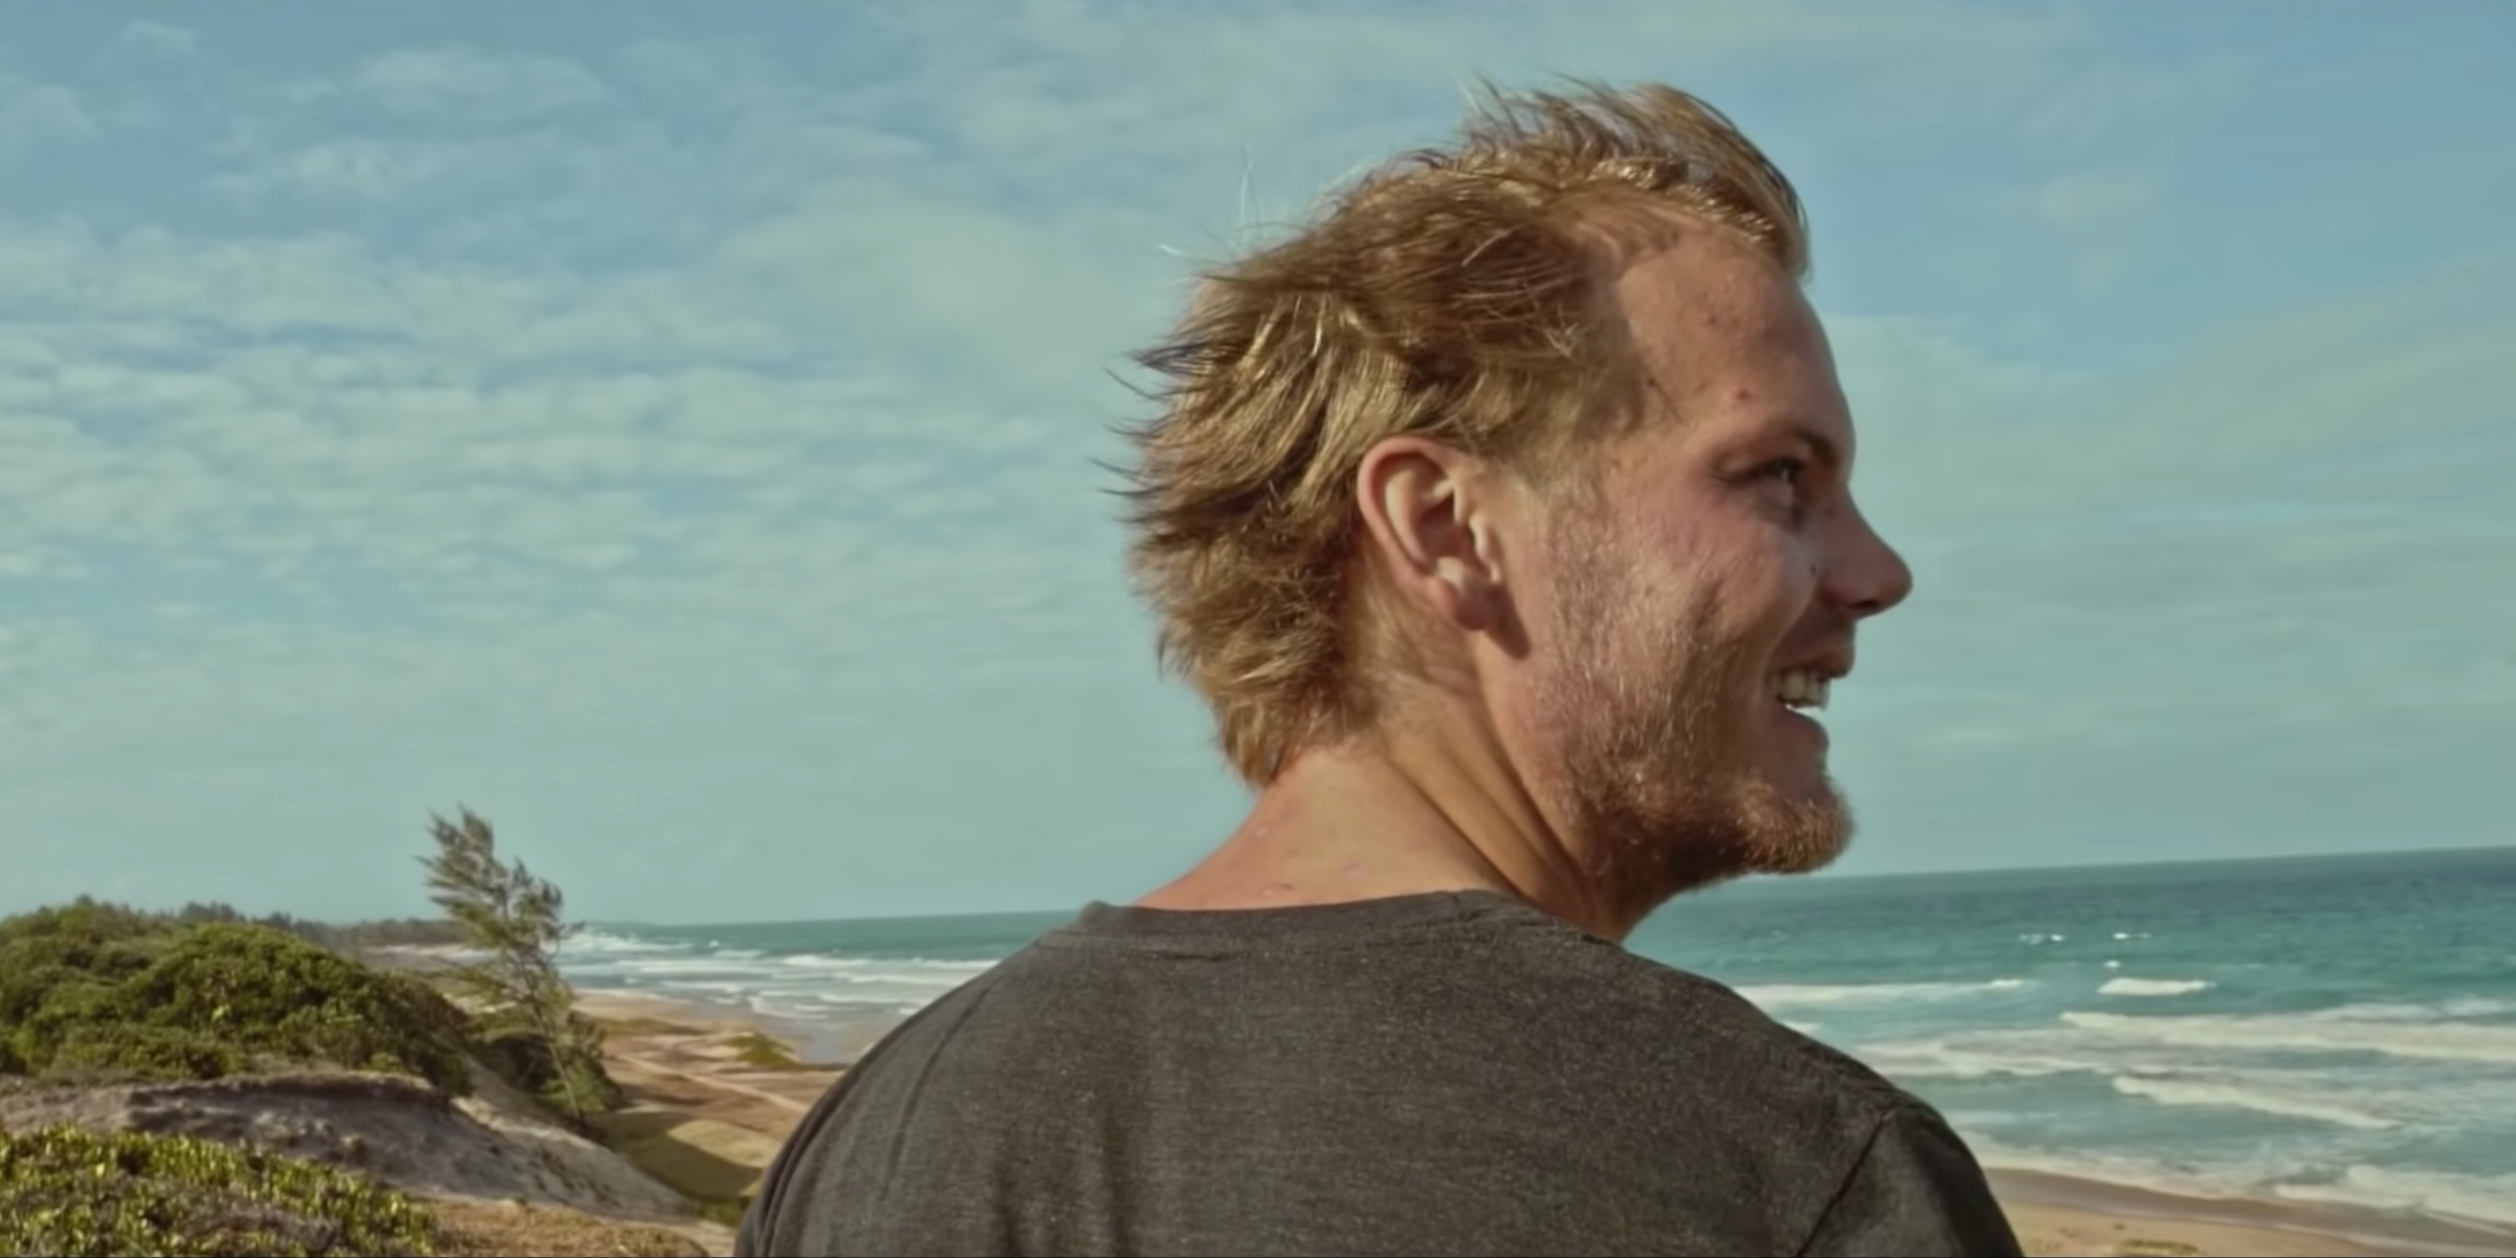 Watch previously unseen footage of Avicii exploring Madagascar in new music video for 'Heaven'